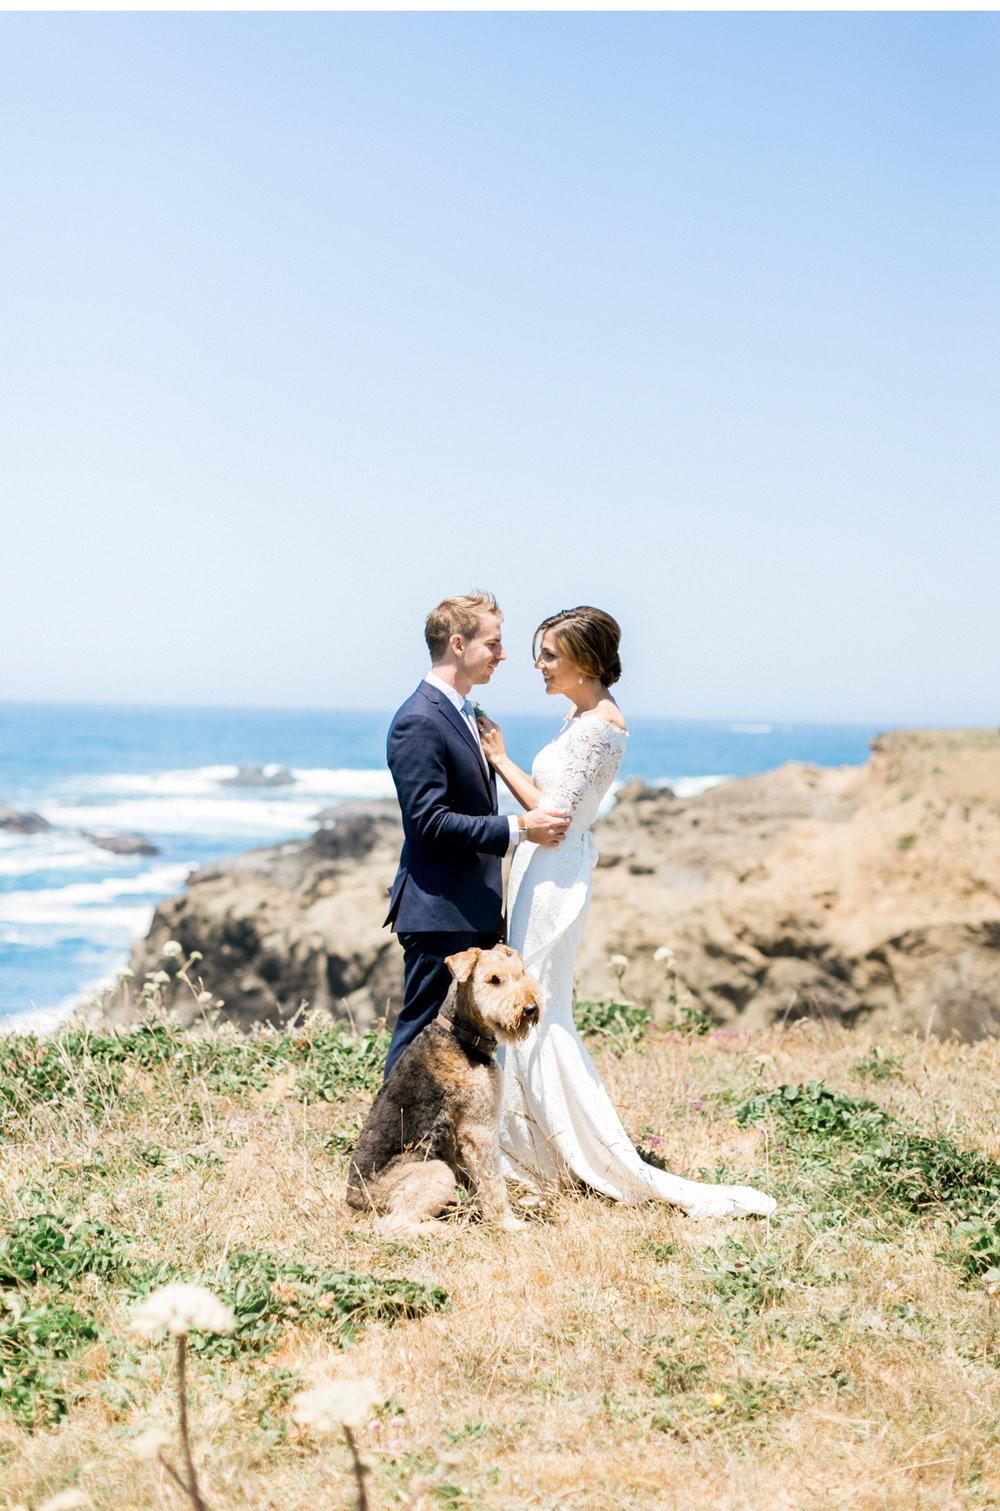 Mendocino-wedding-photographer-natalie-schutt-photography_14.jpg